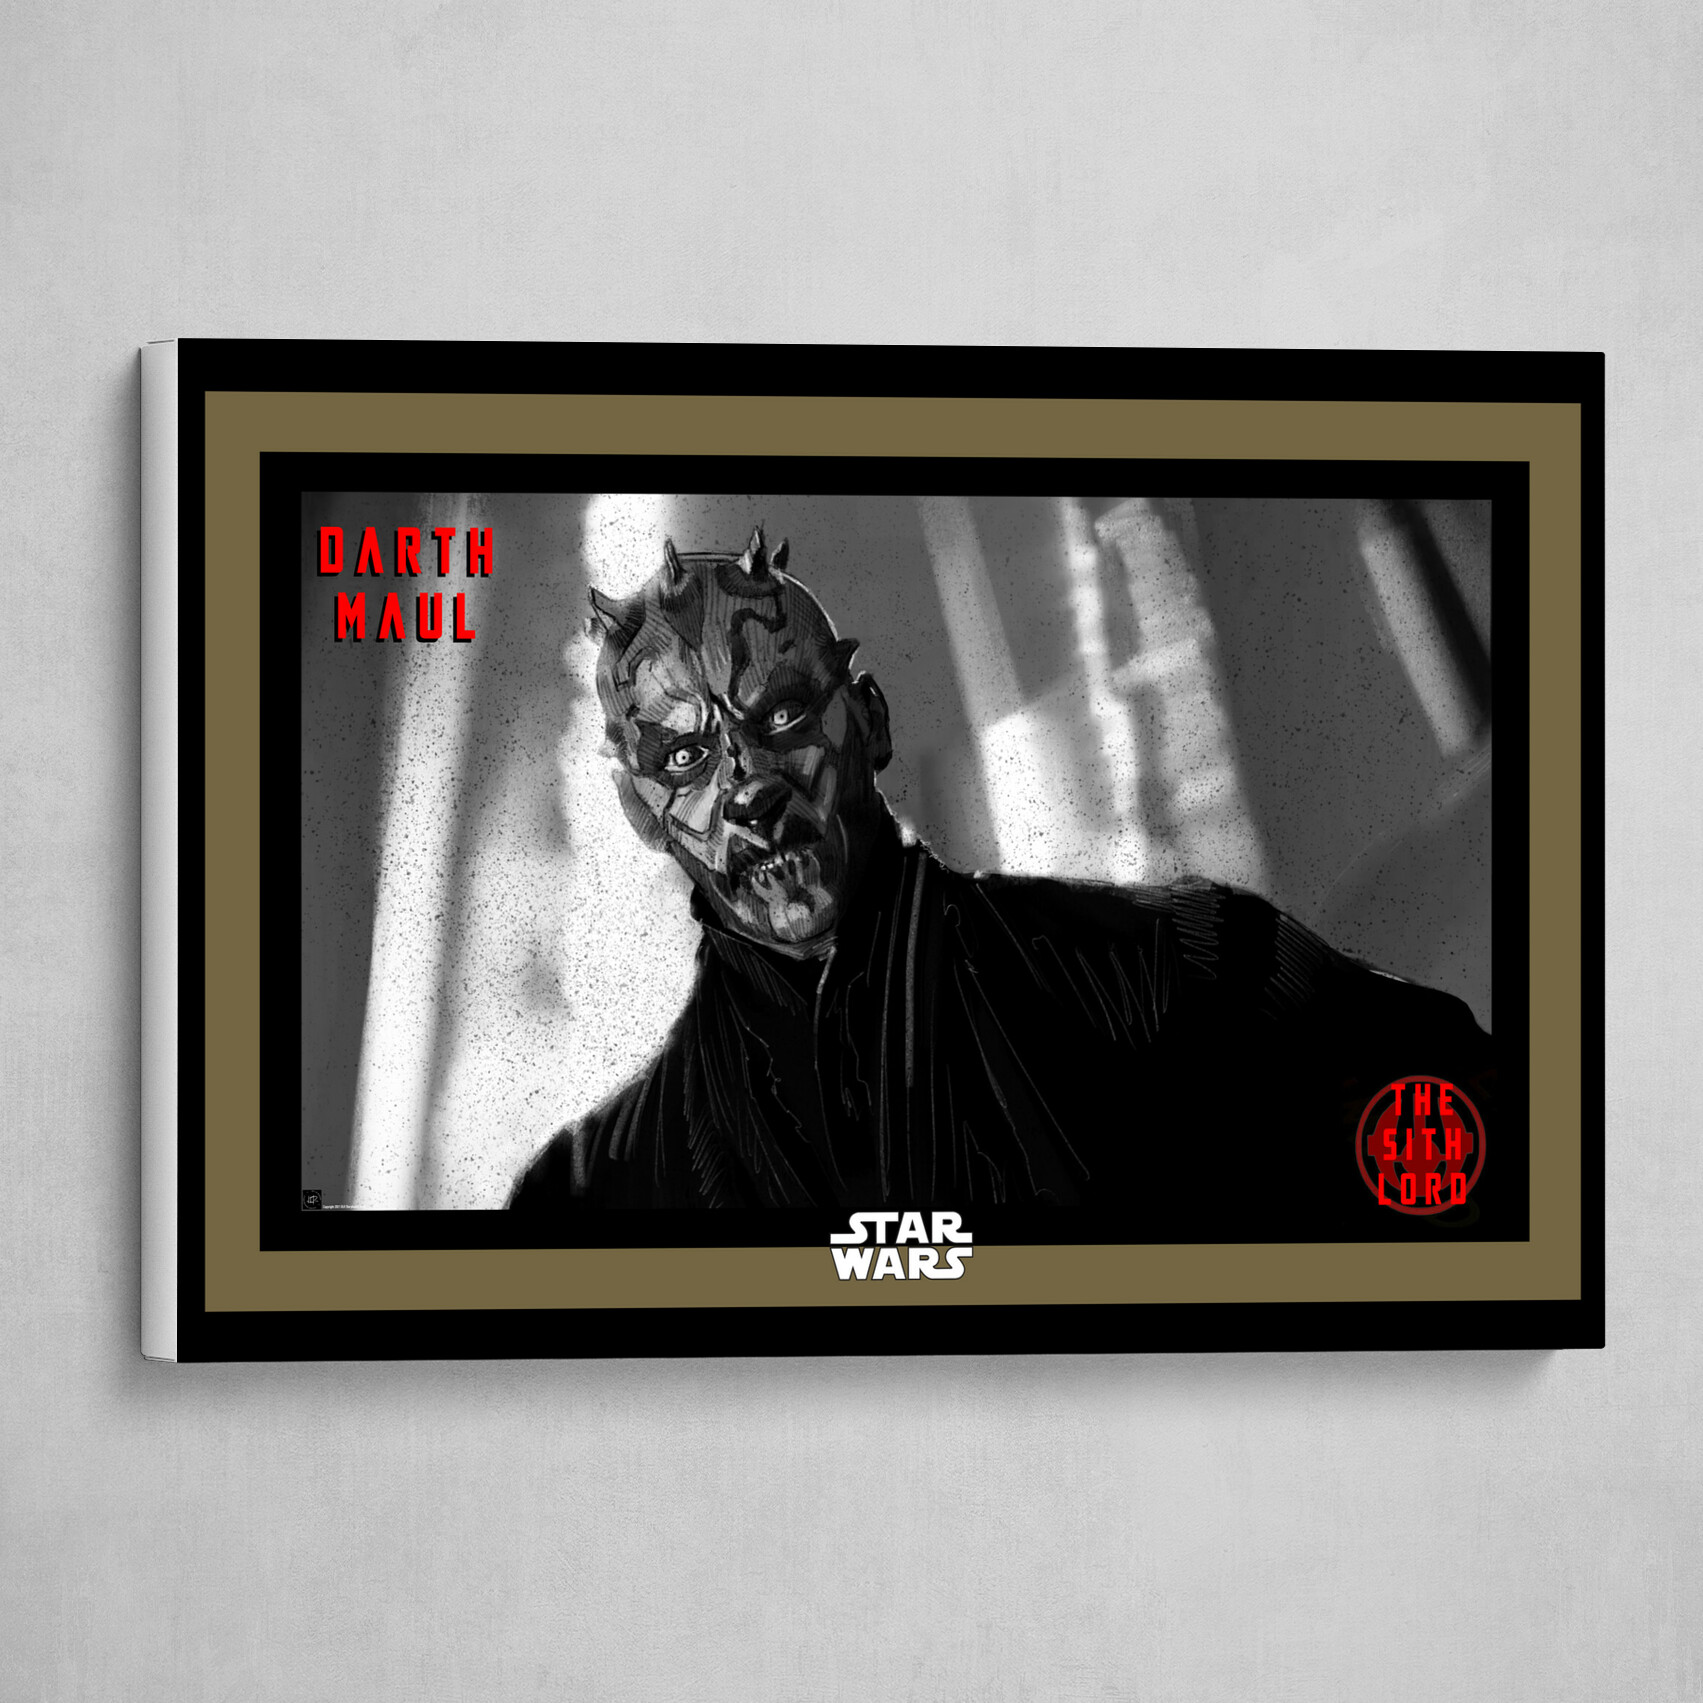 Darth Maul-The Sith Lord Poster in B&W with Red and Gold